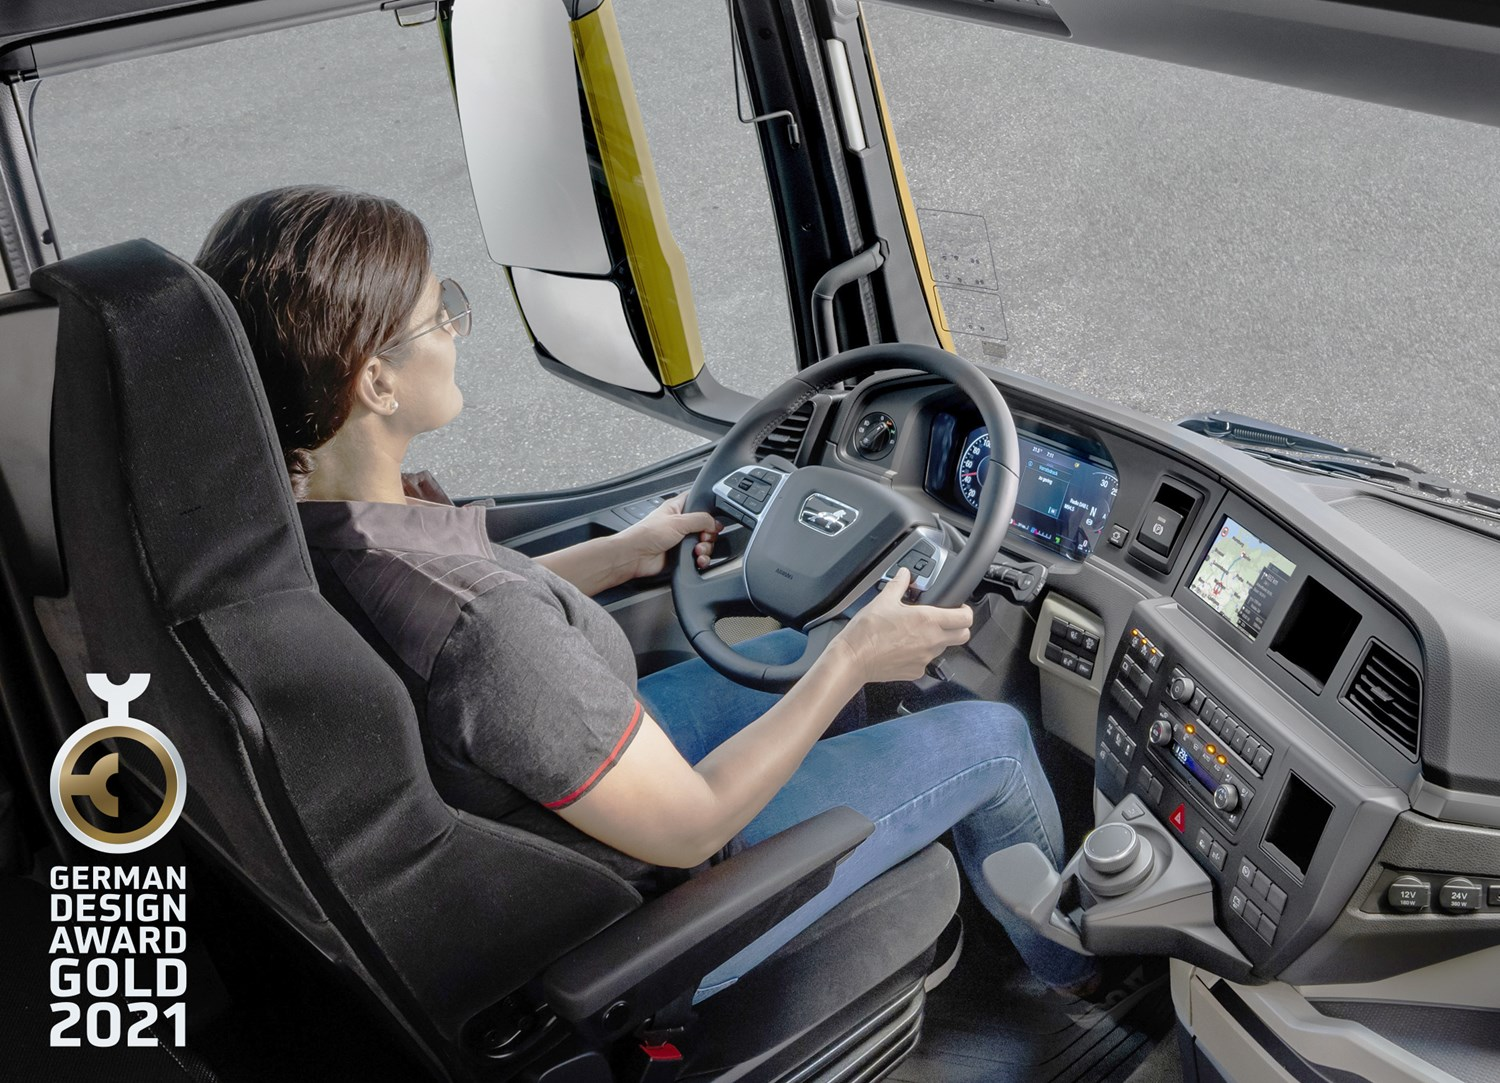 """""""Gold"""" for the new MAN Truck Generation: driver's workplace awarded with the highest prize category in the renowned German Design Award."""